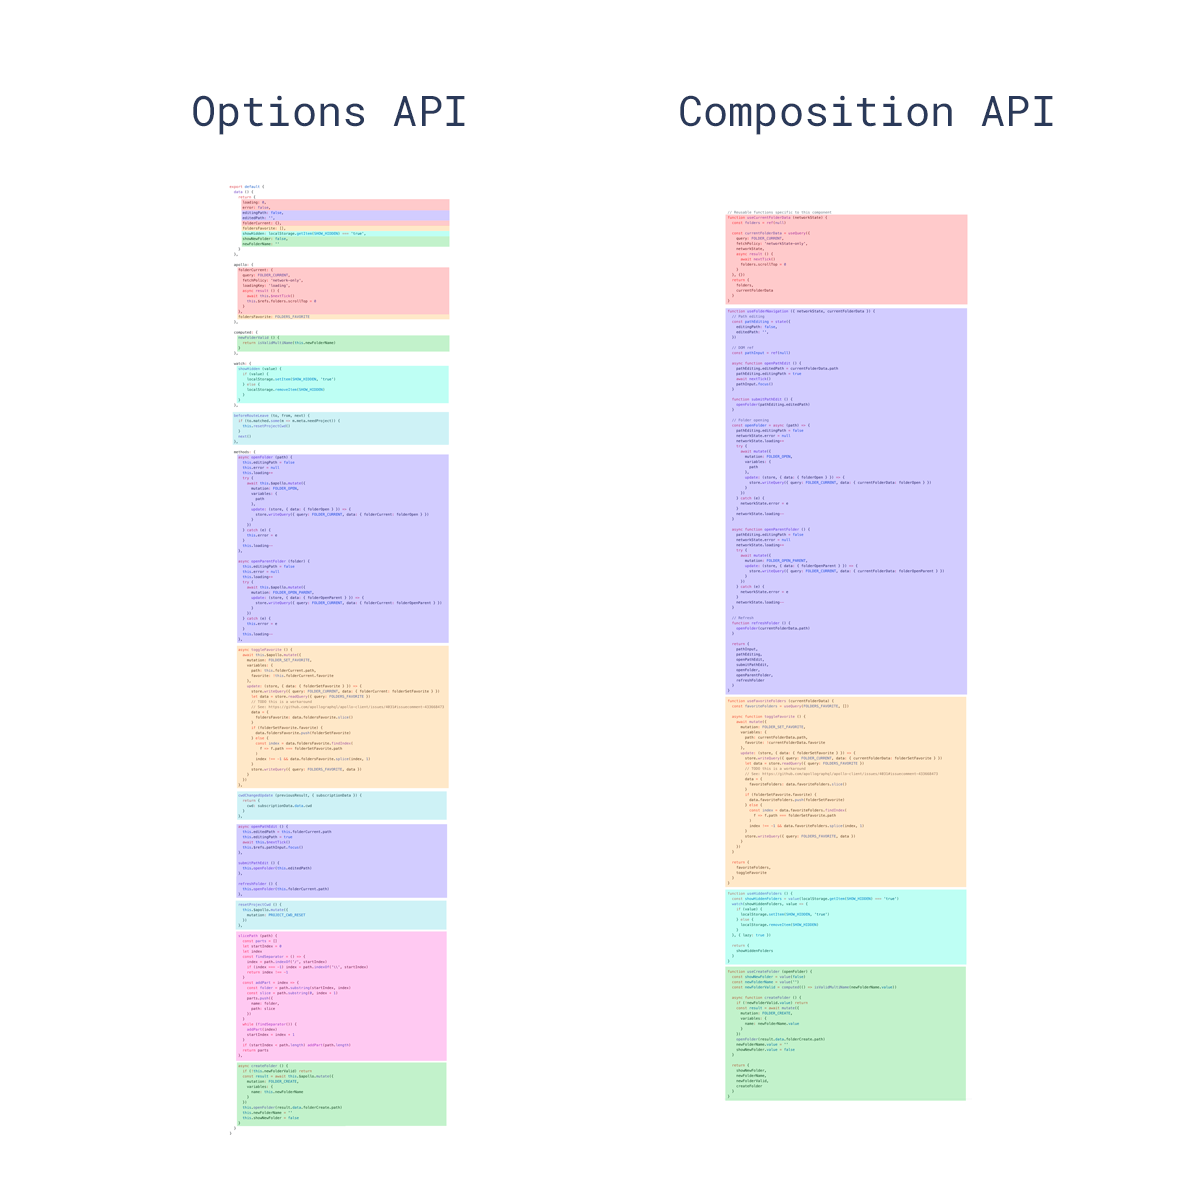 Options API vs. Composition API